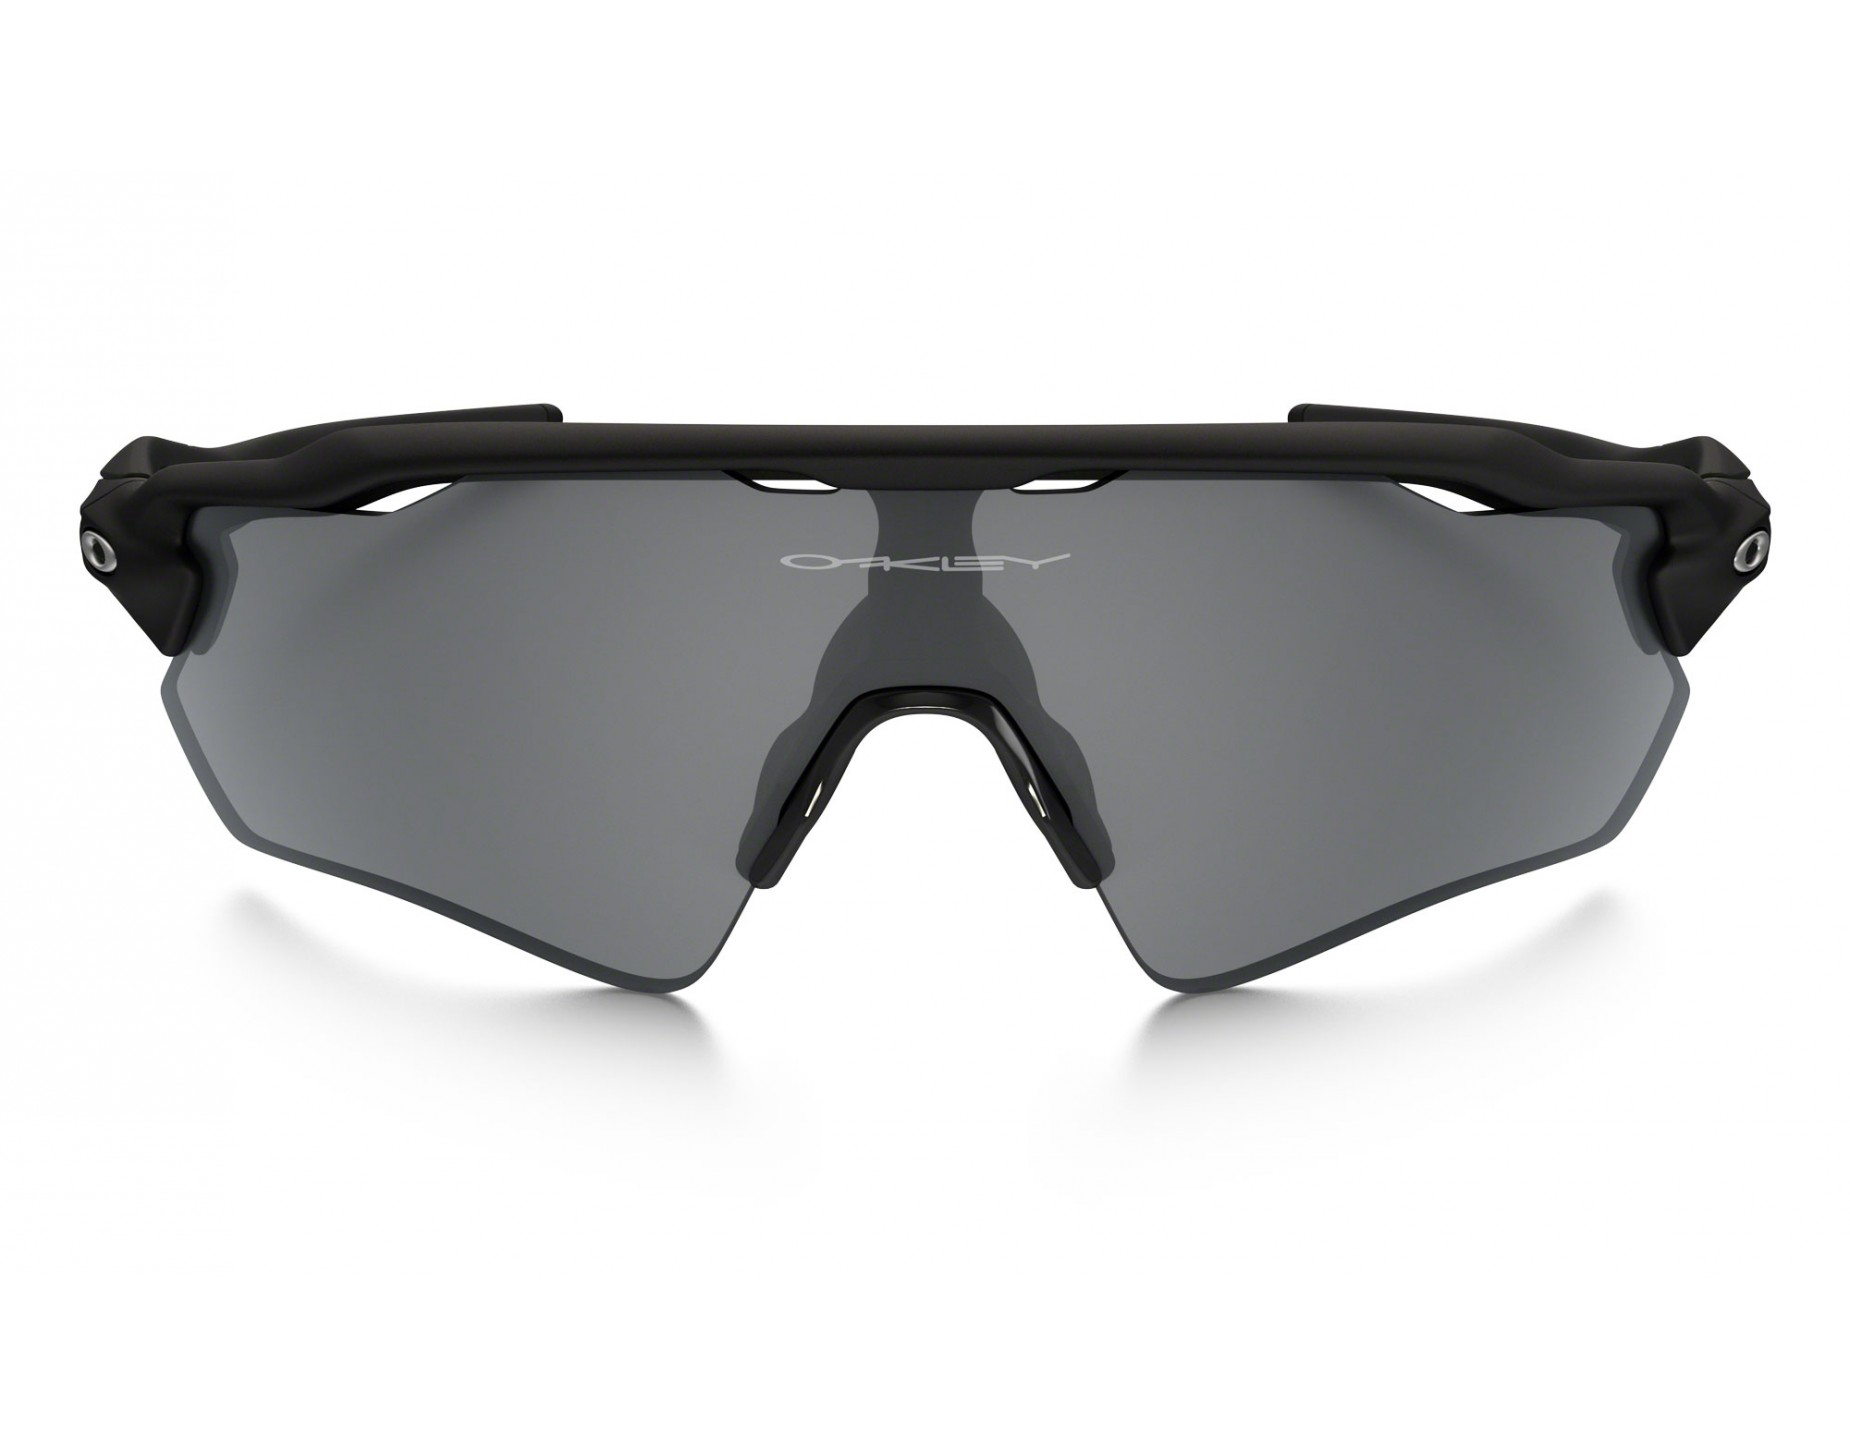 oakley sports goggles  OAKLEY RADAR EV Path sports glasses \u2013 everything you need!